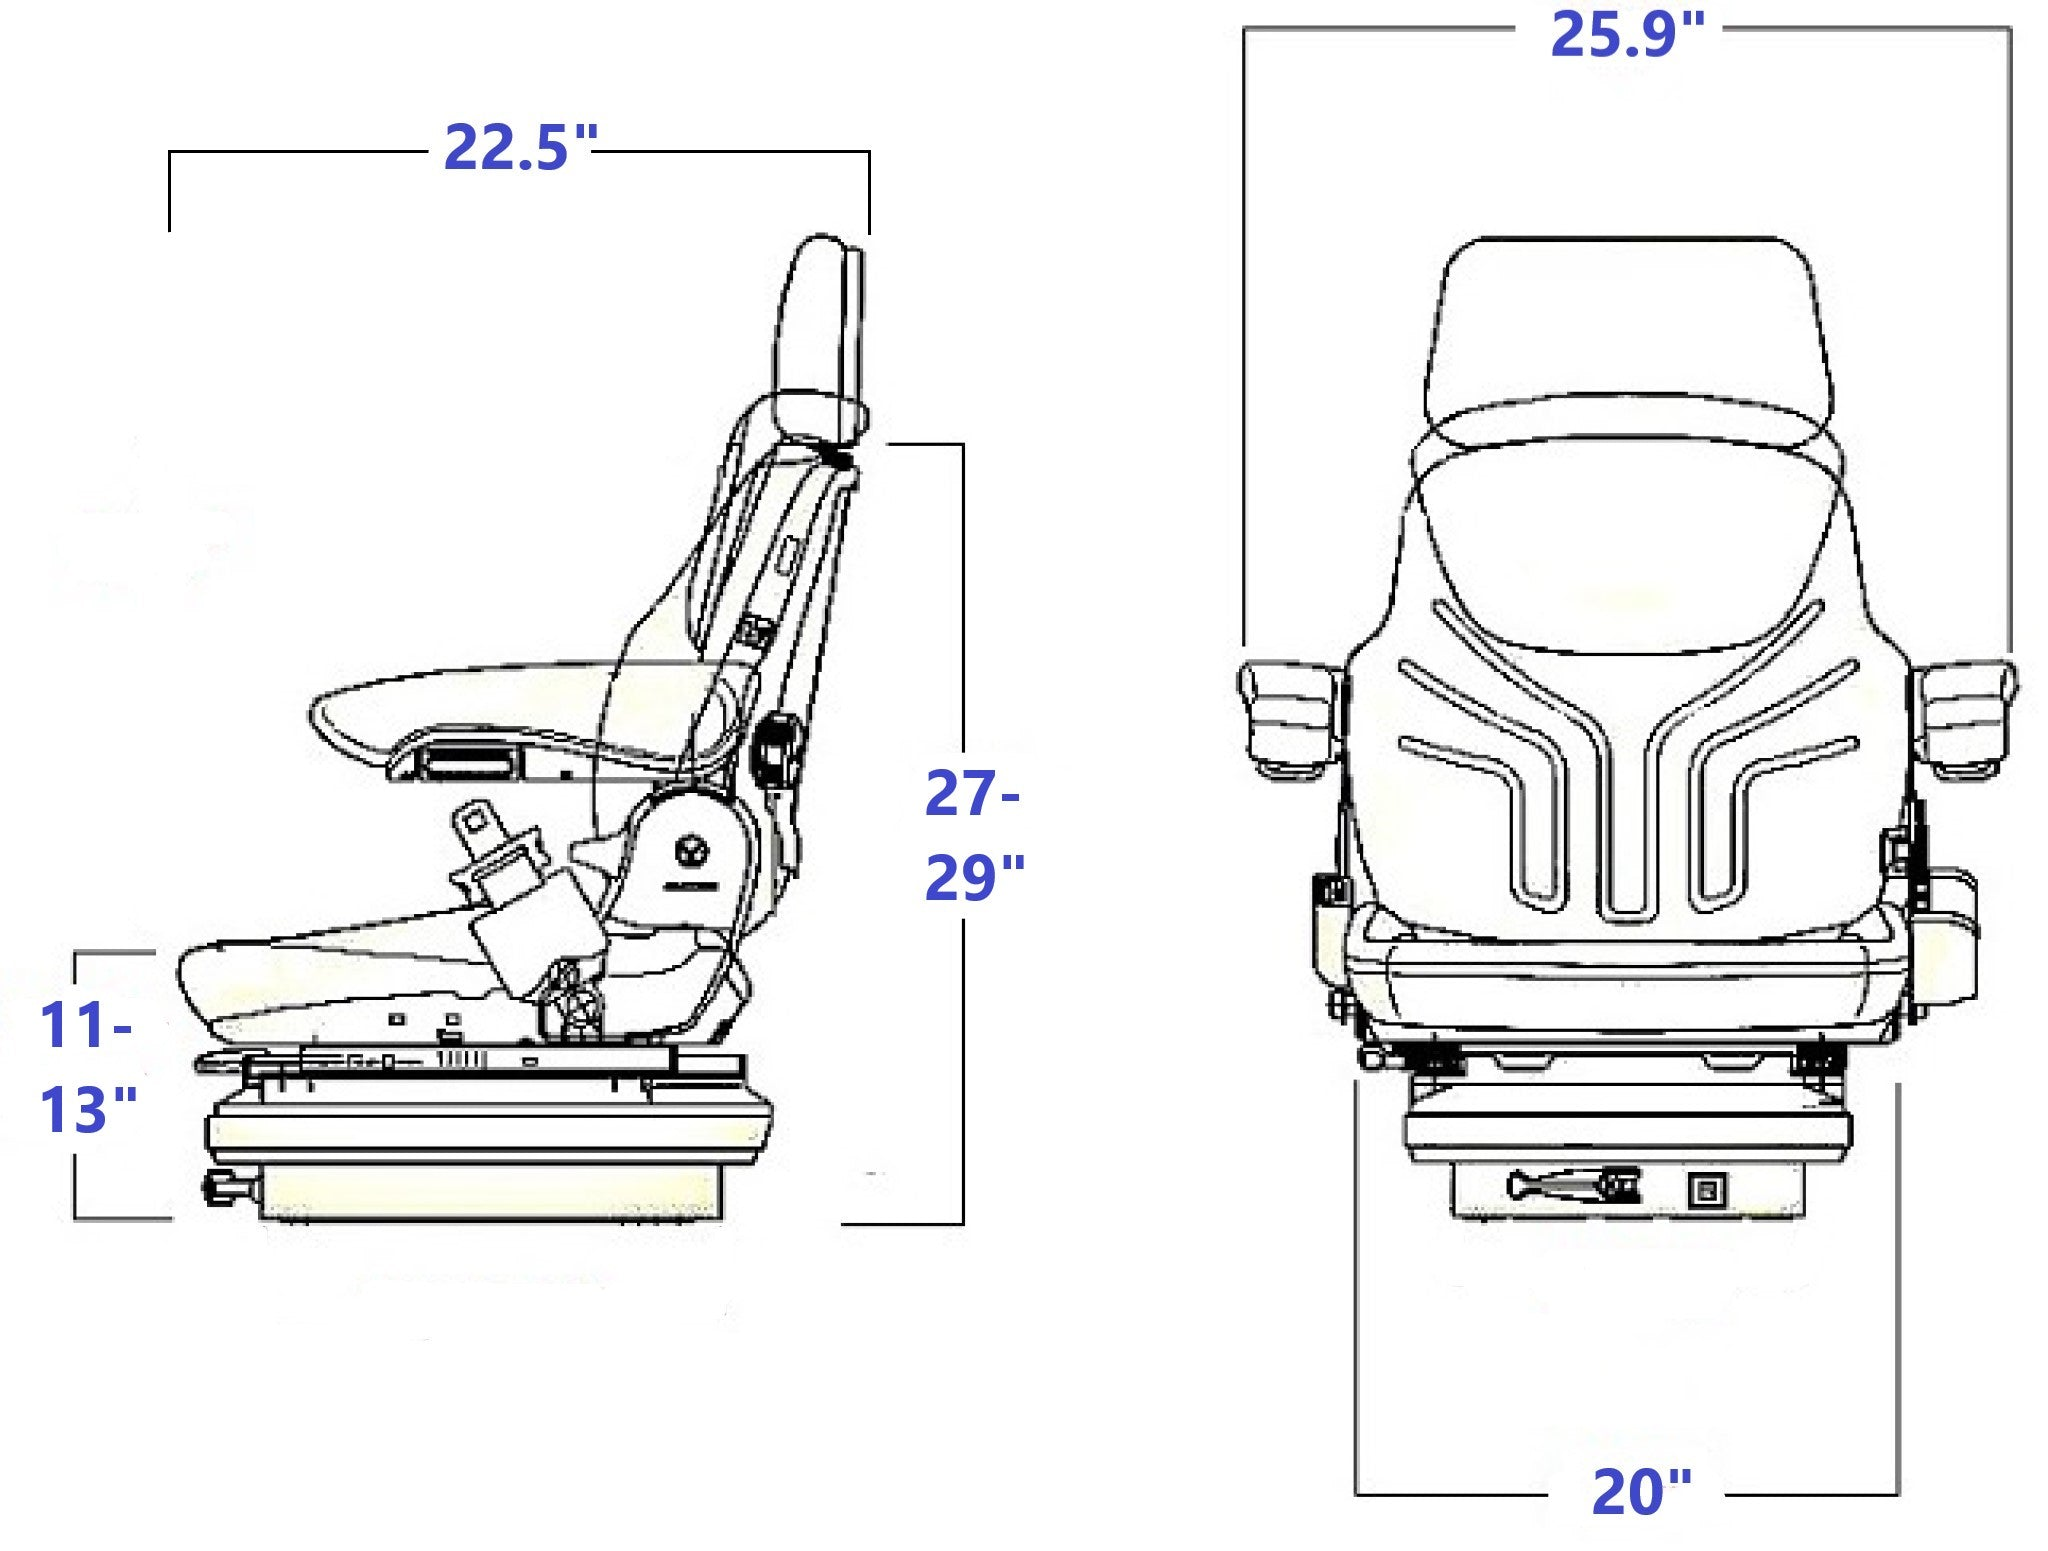 Grammer MSG85/731 NM Technical Drawing